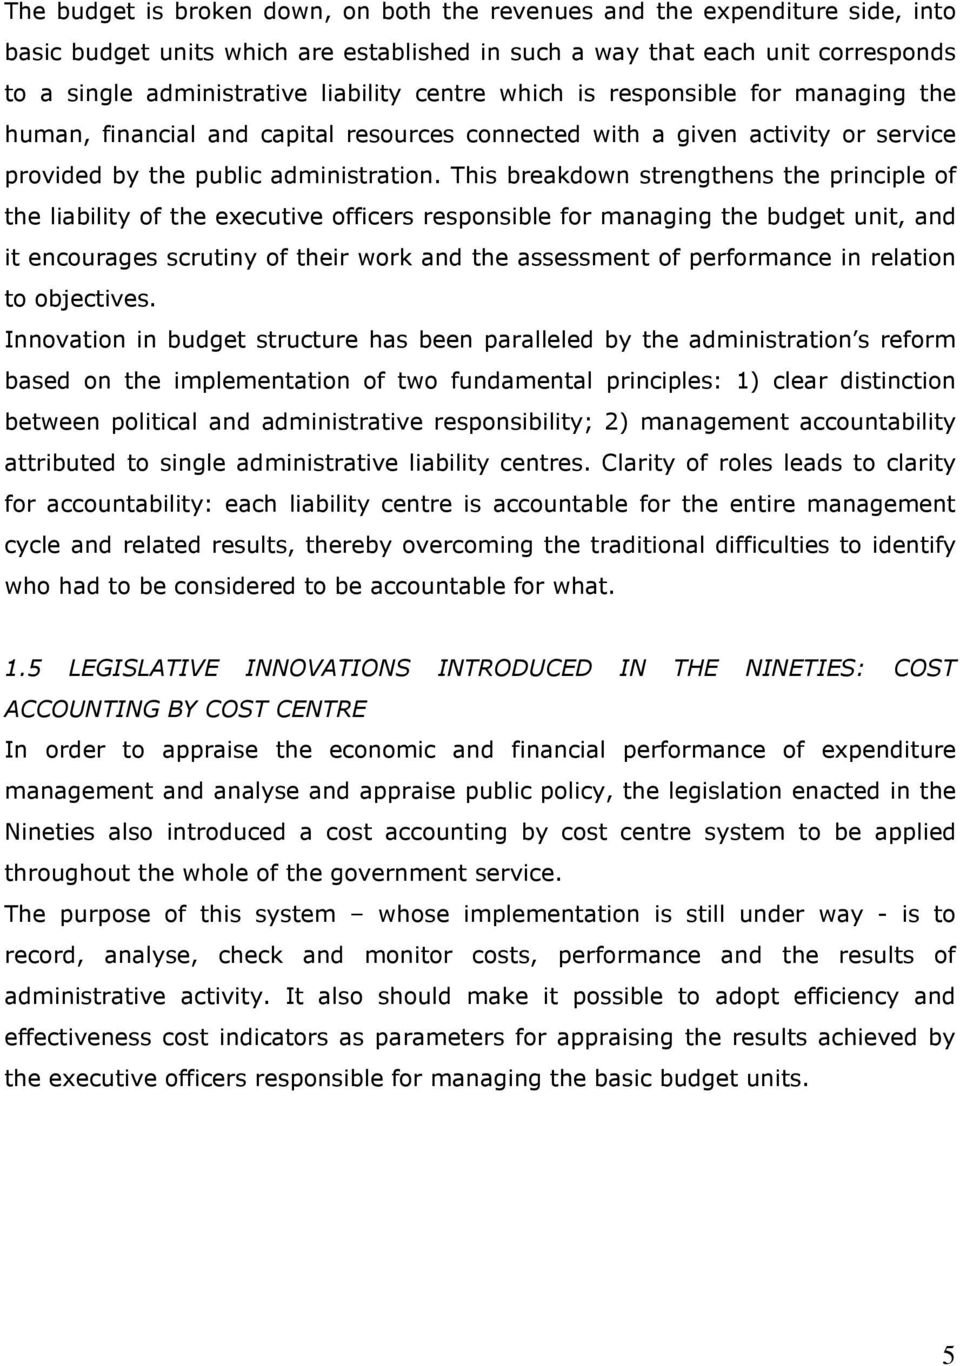 This breakdown strengthens the principle of the liability of the executive officers responsible for managing the budget unit, and it encourages scrutiny of their work and the assessment of